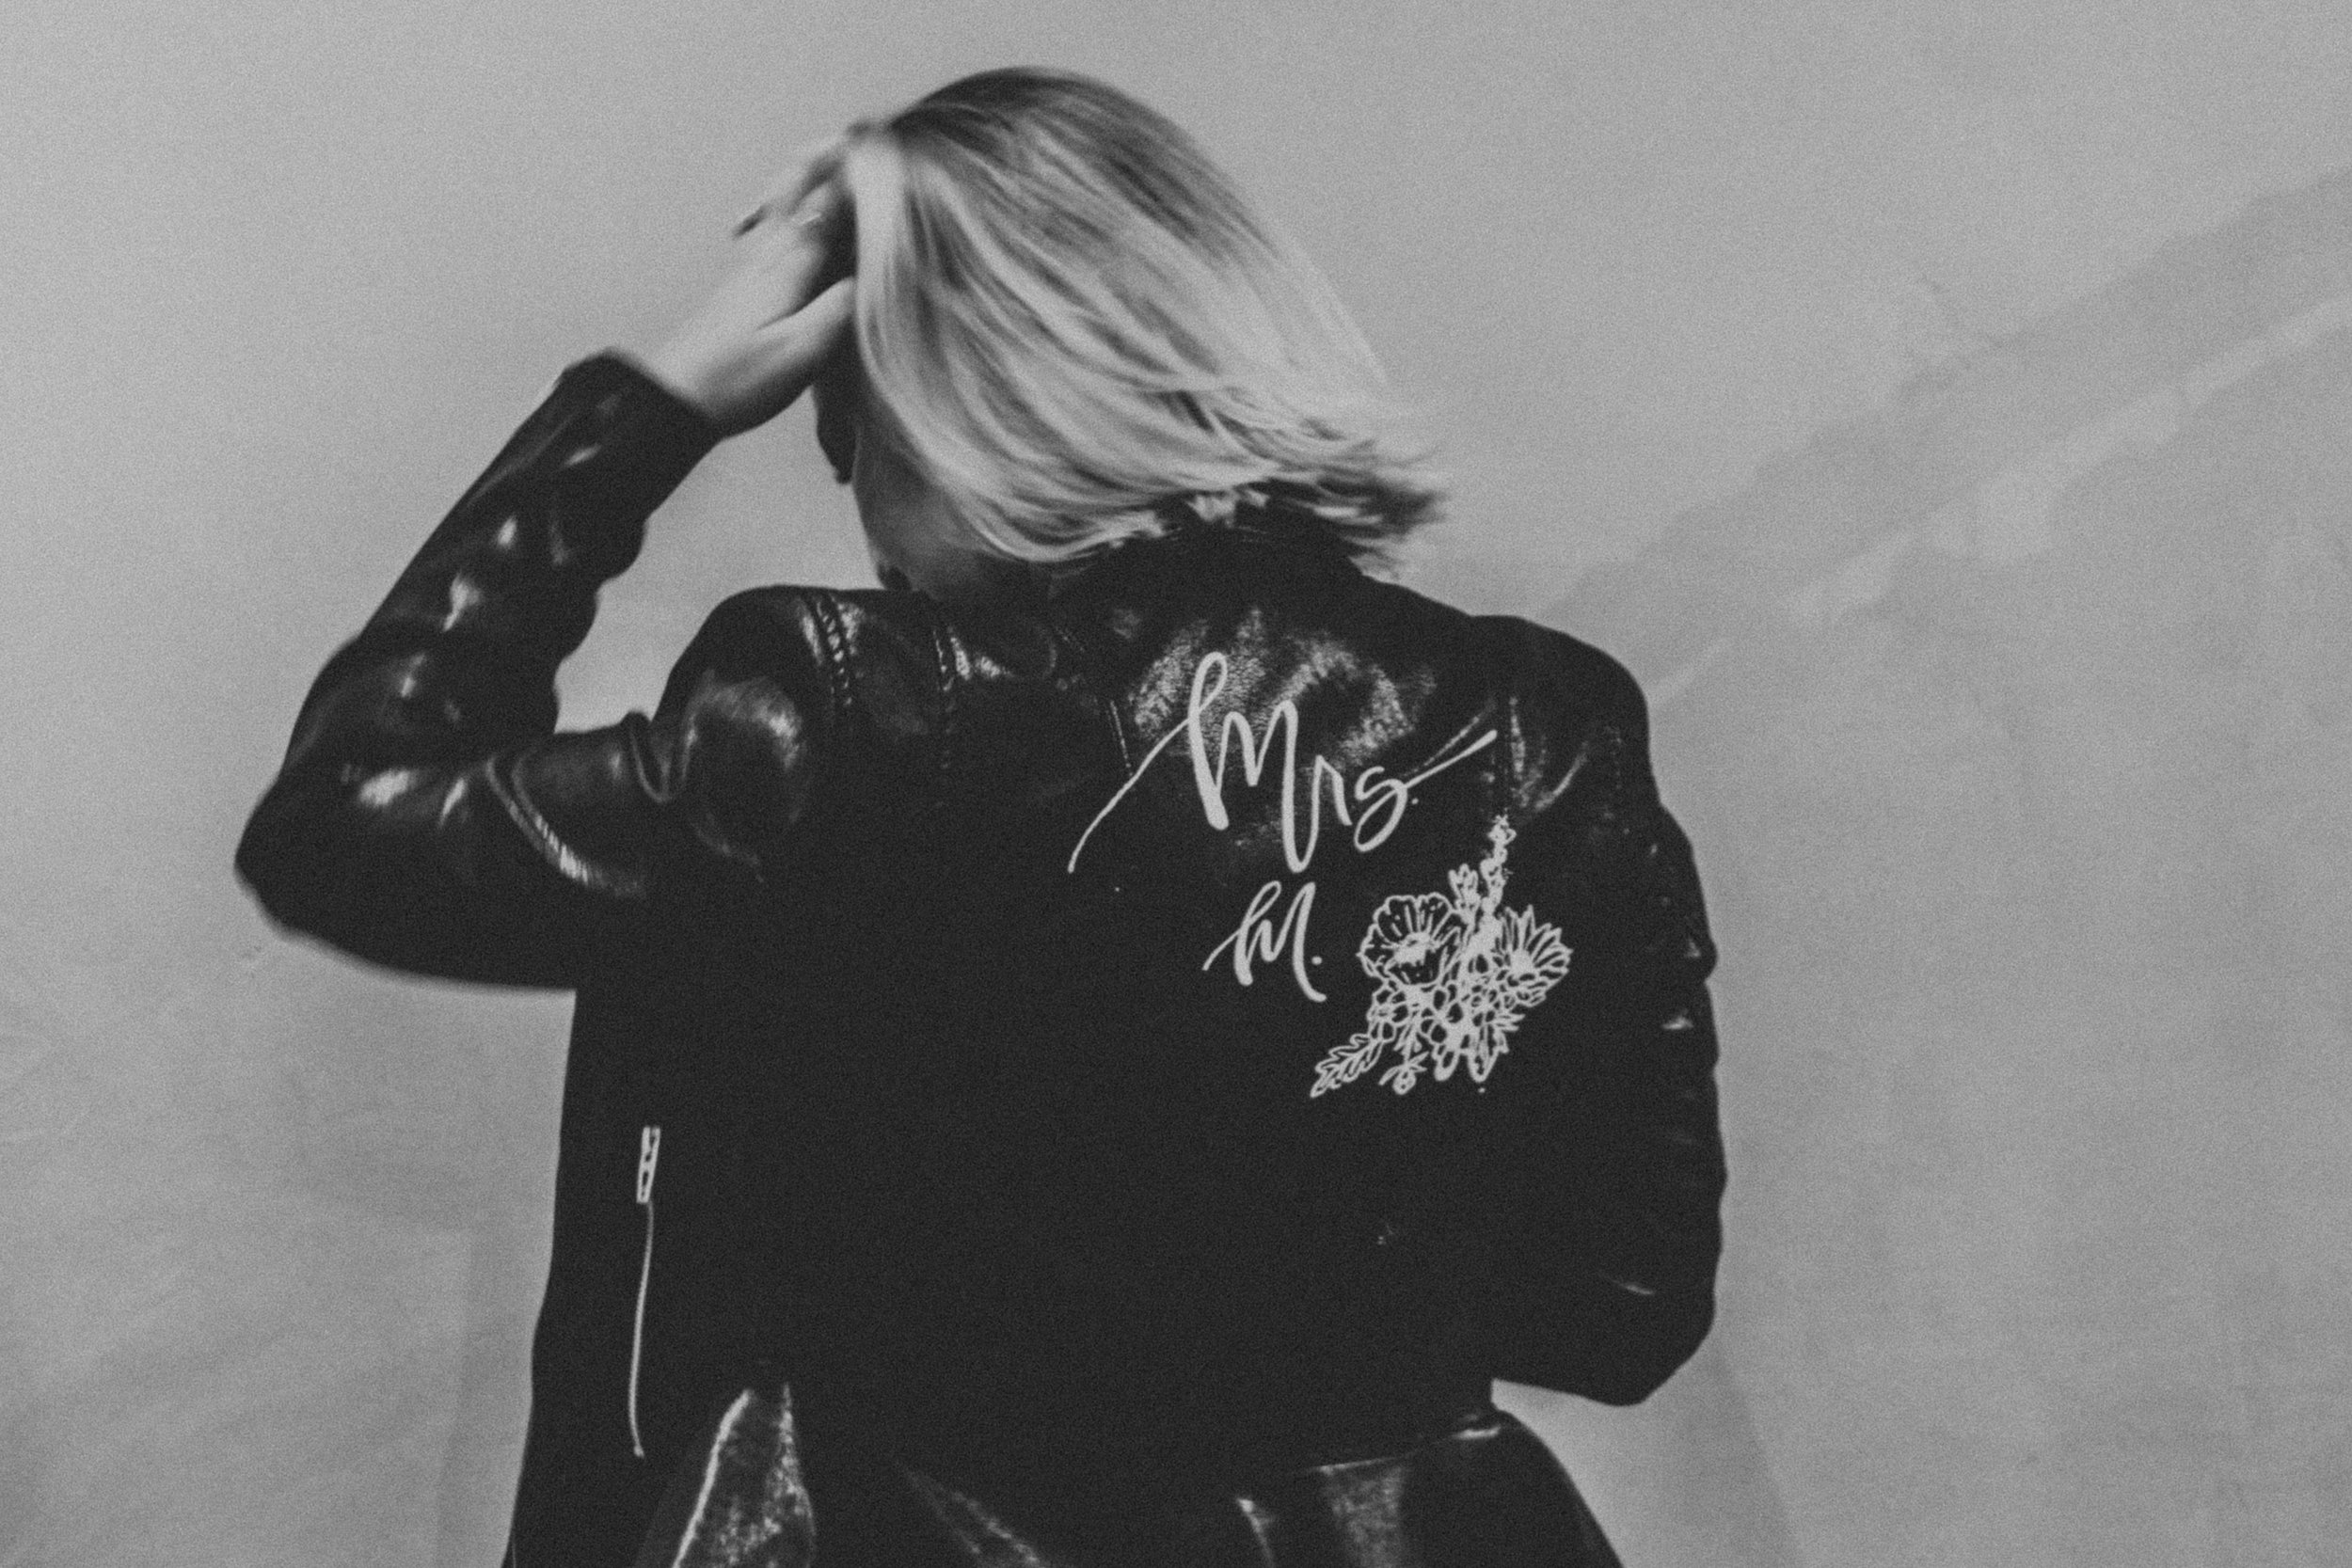 MARY'S LEATHER JACKET - Leather paint | November 2018.Personalized jacket for the future Mrs. Magenheim.